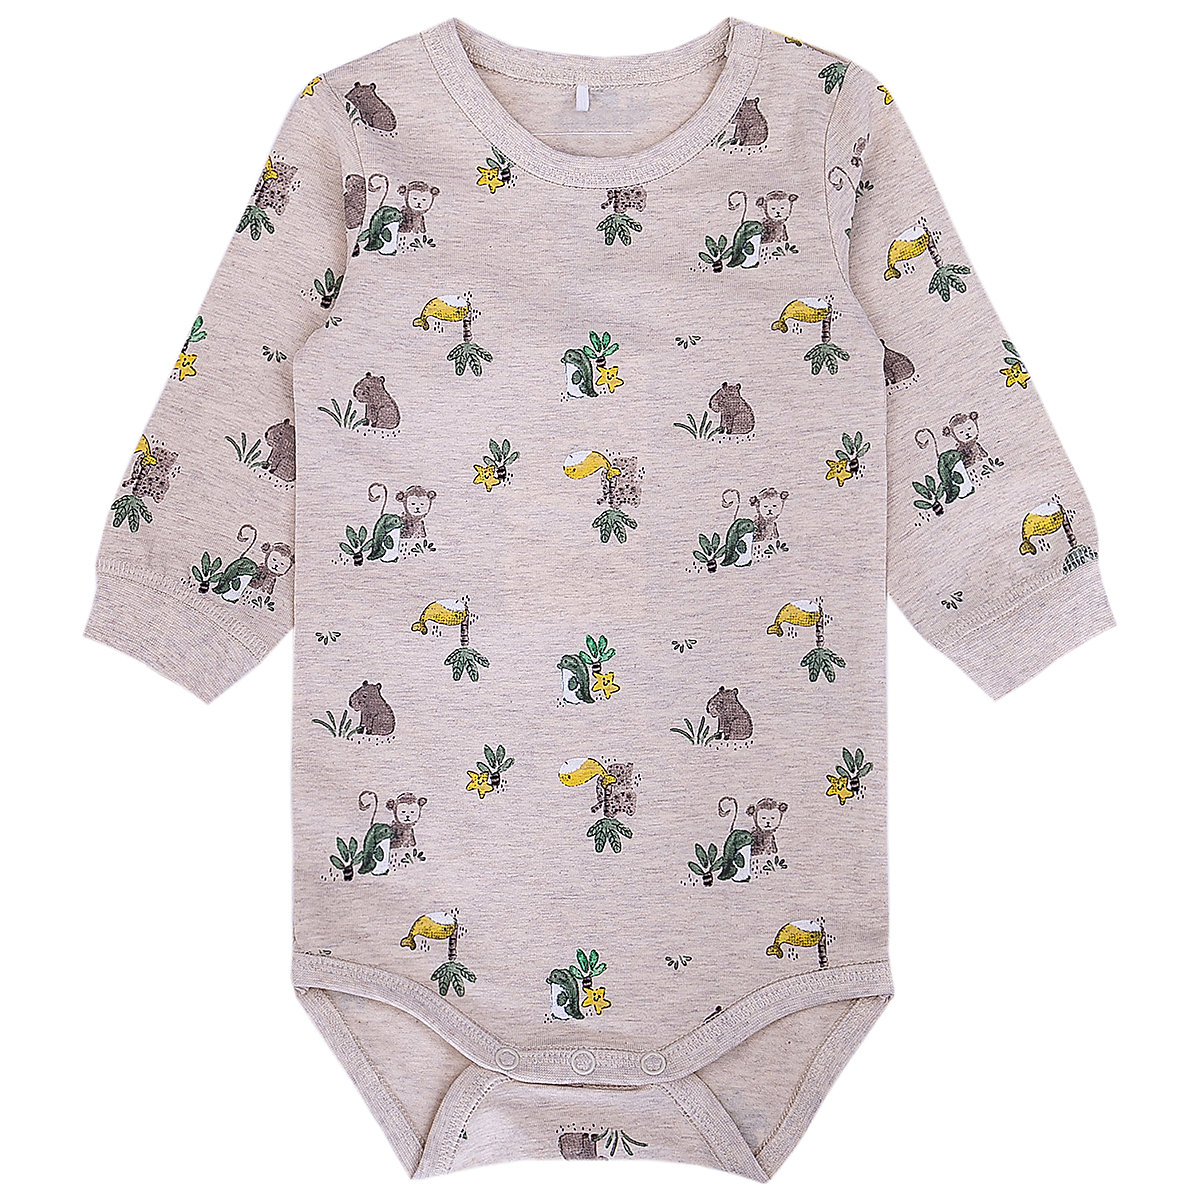 NAME IT Bodysuits 11201895 Baby Clothing Bodysuit For Boys And Girls